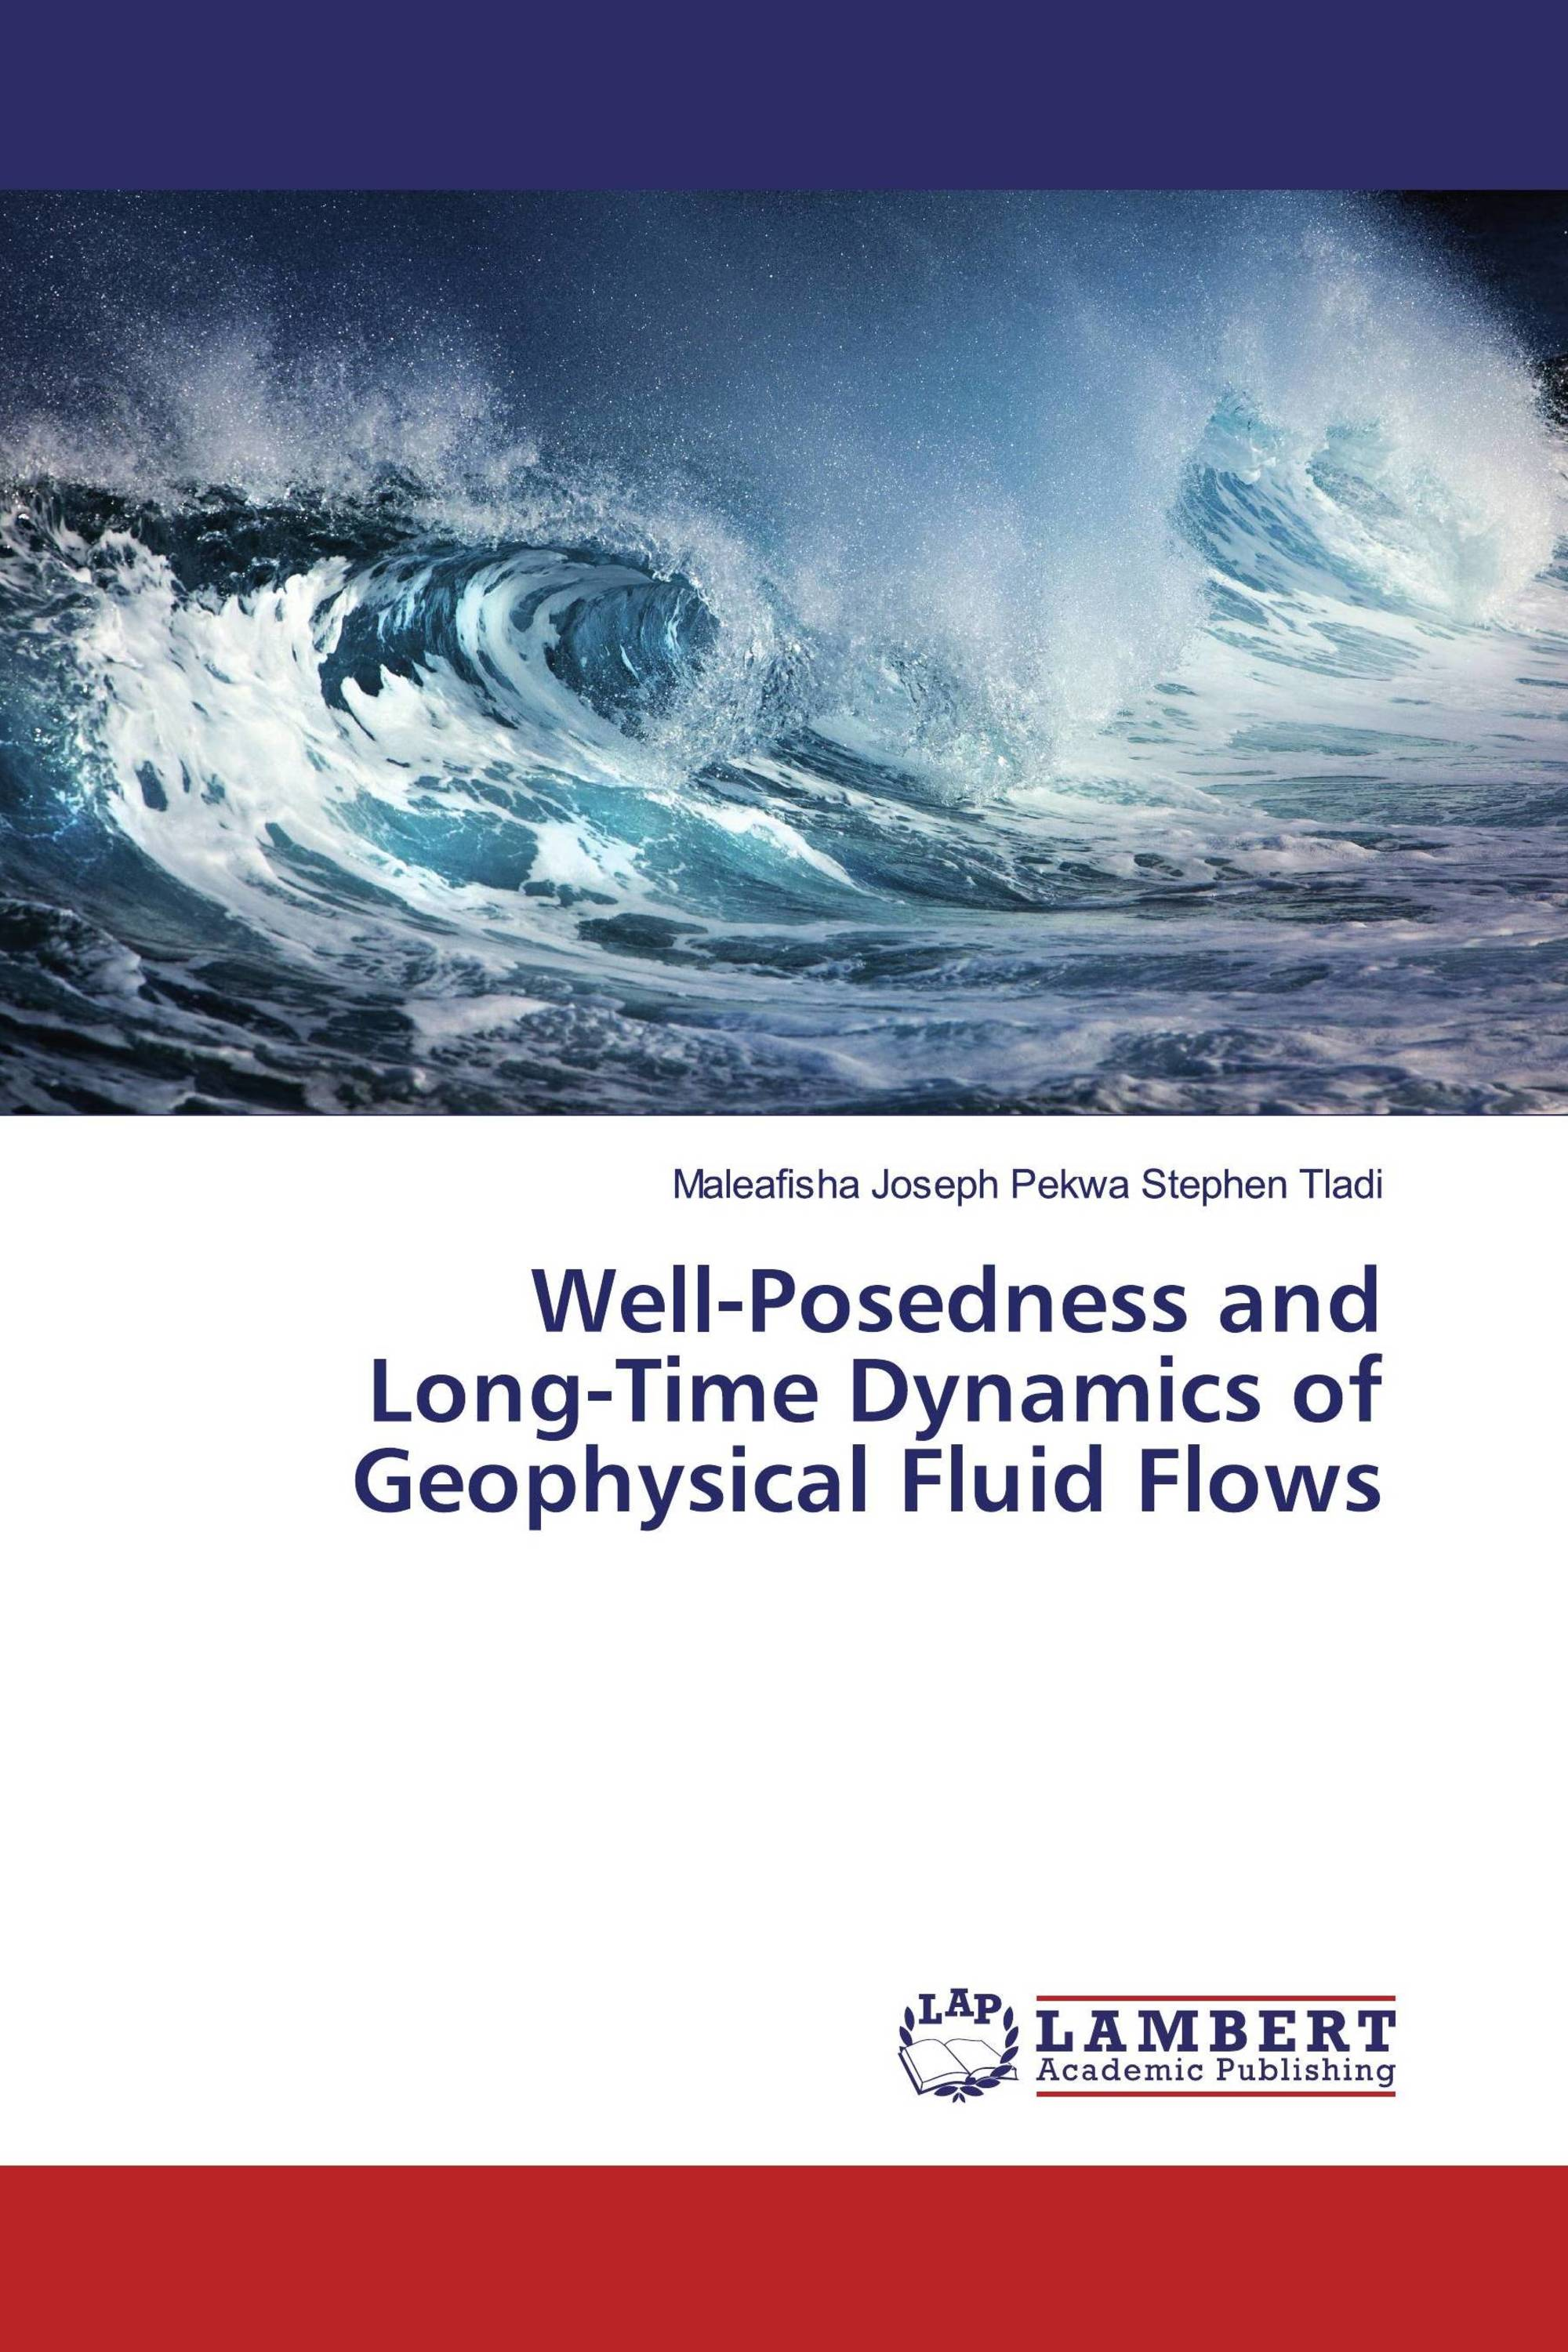 Well-Posedness and Long-Time Dynamics of Geophysical Fluid Flows